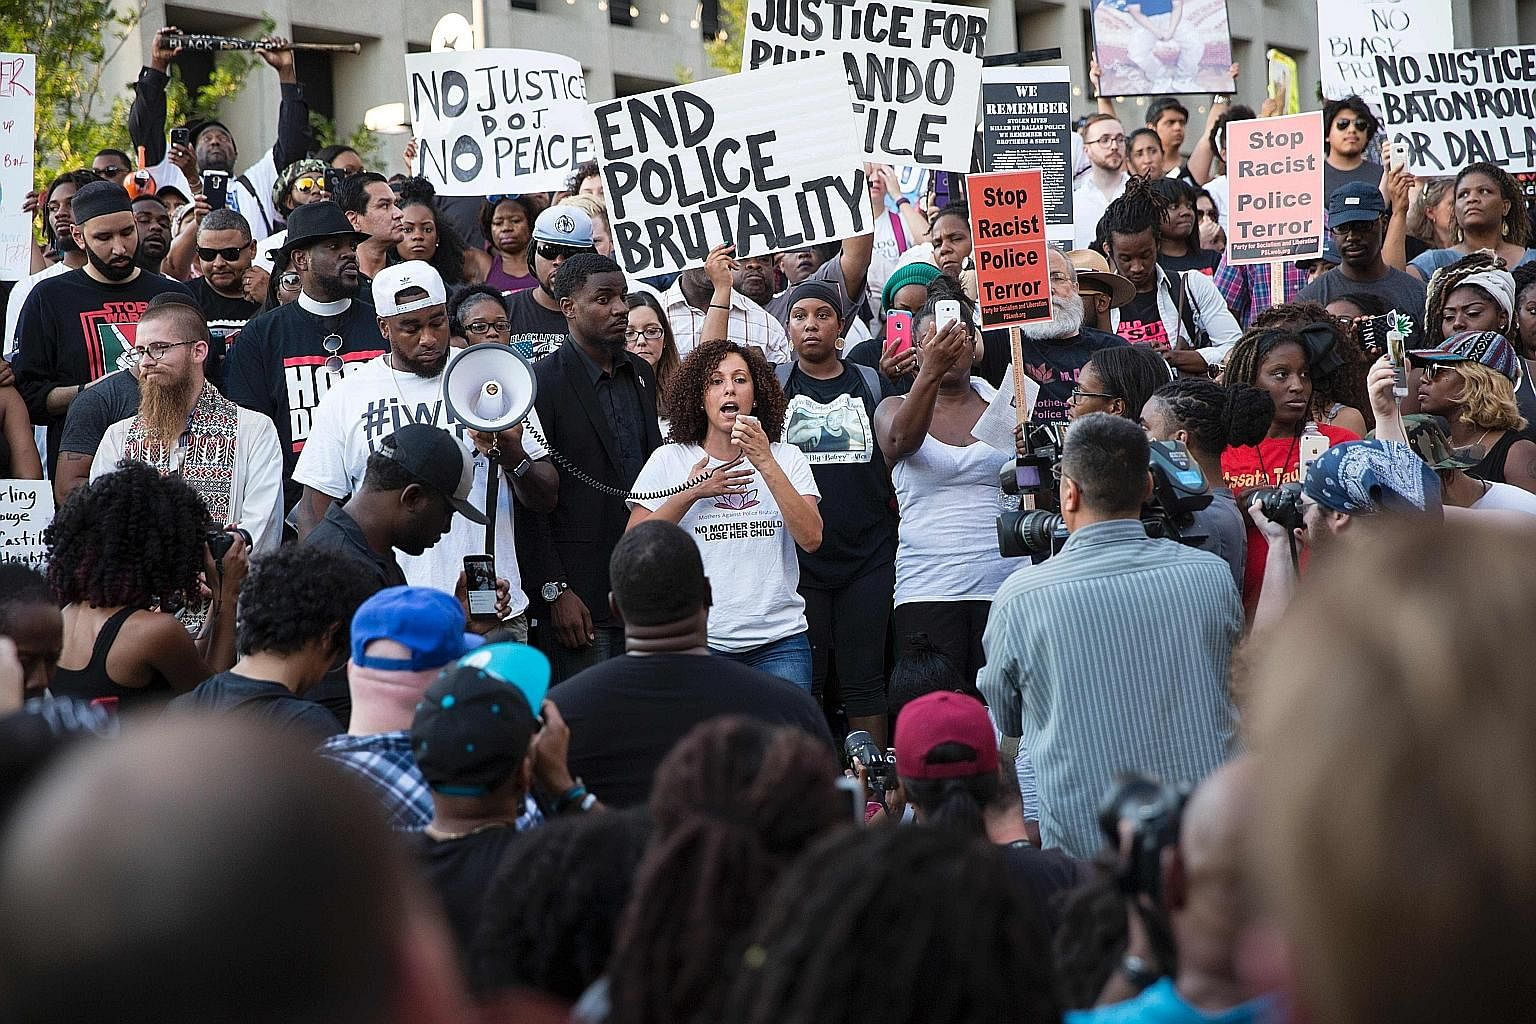 Information posted on social media has, on occasion, spurred public protests against perceived injustices. This was the case in Dallas earlier this month.